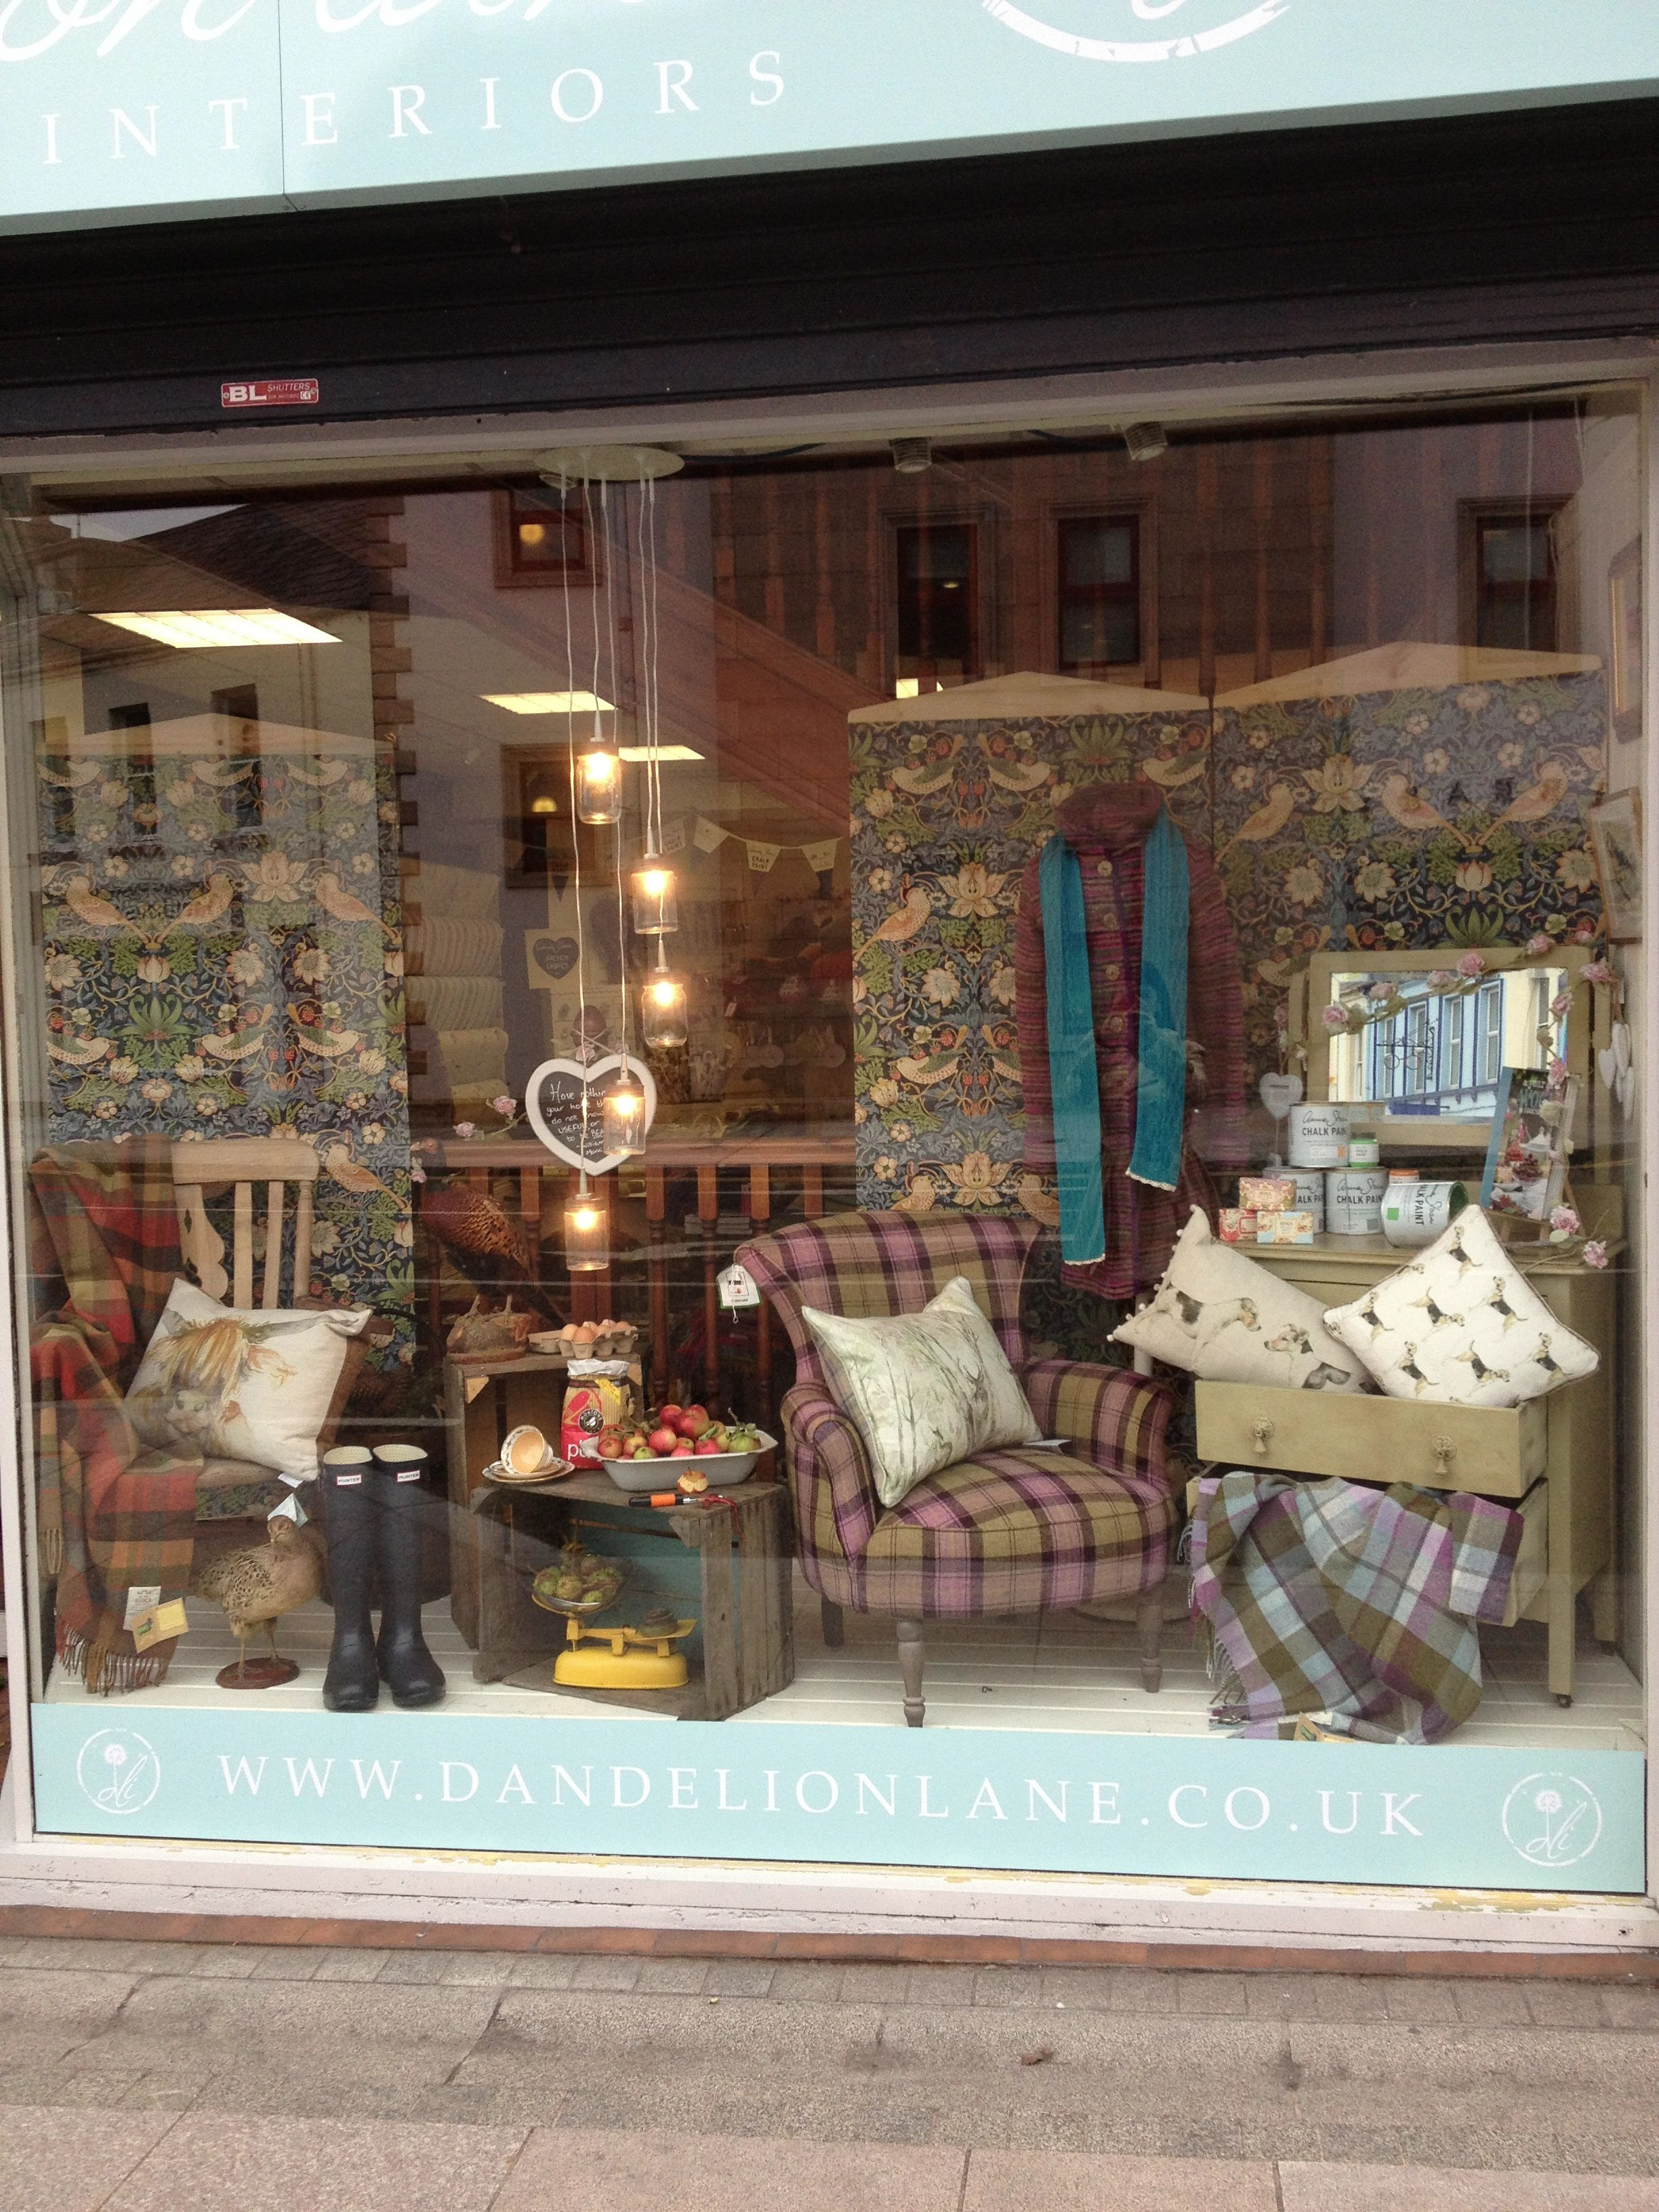 Furniture purchases can involve important decisions. This window display can work great: creating a lovely room ...